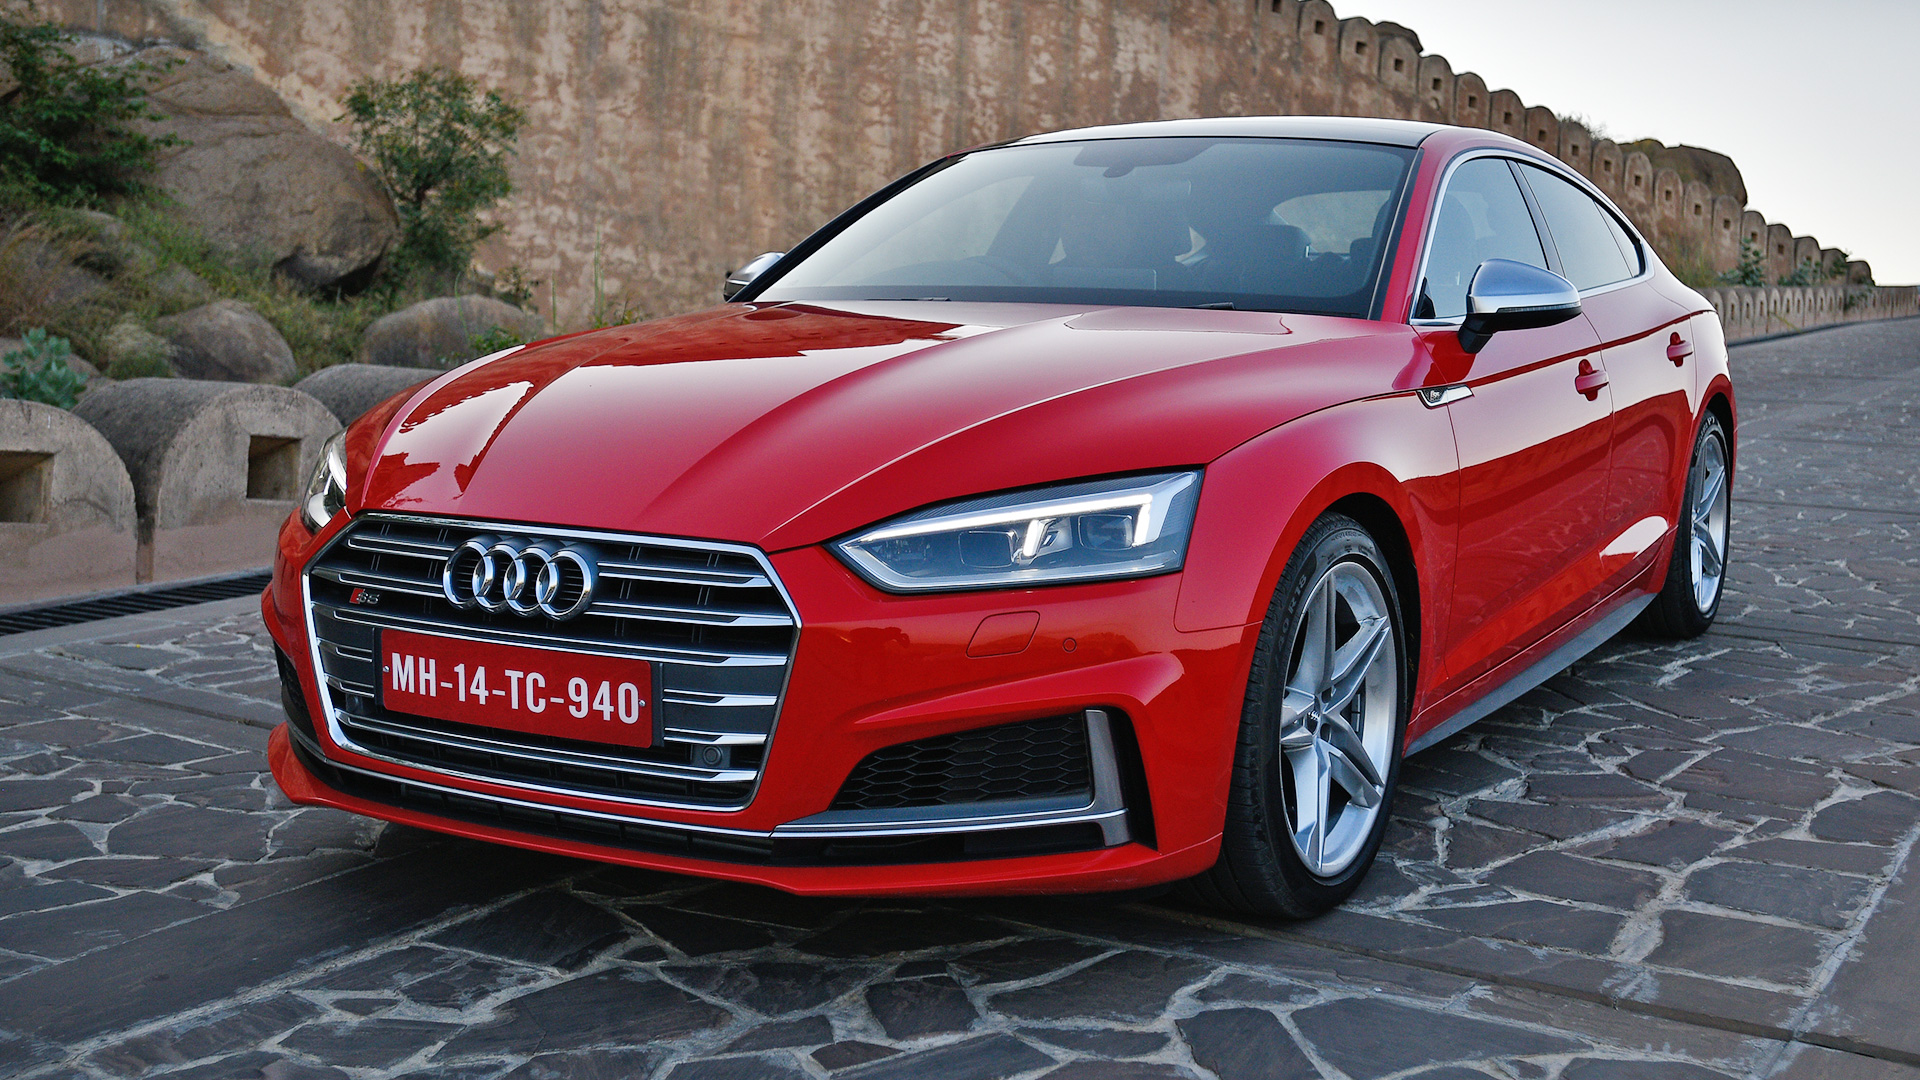 Audi S5 Sportback 2017 Price Mileage Reviews Specification